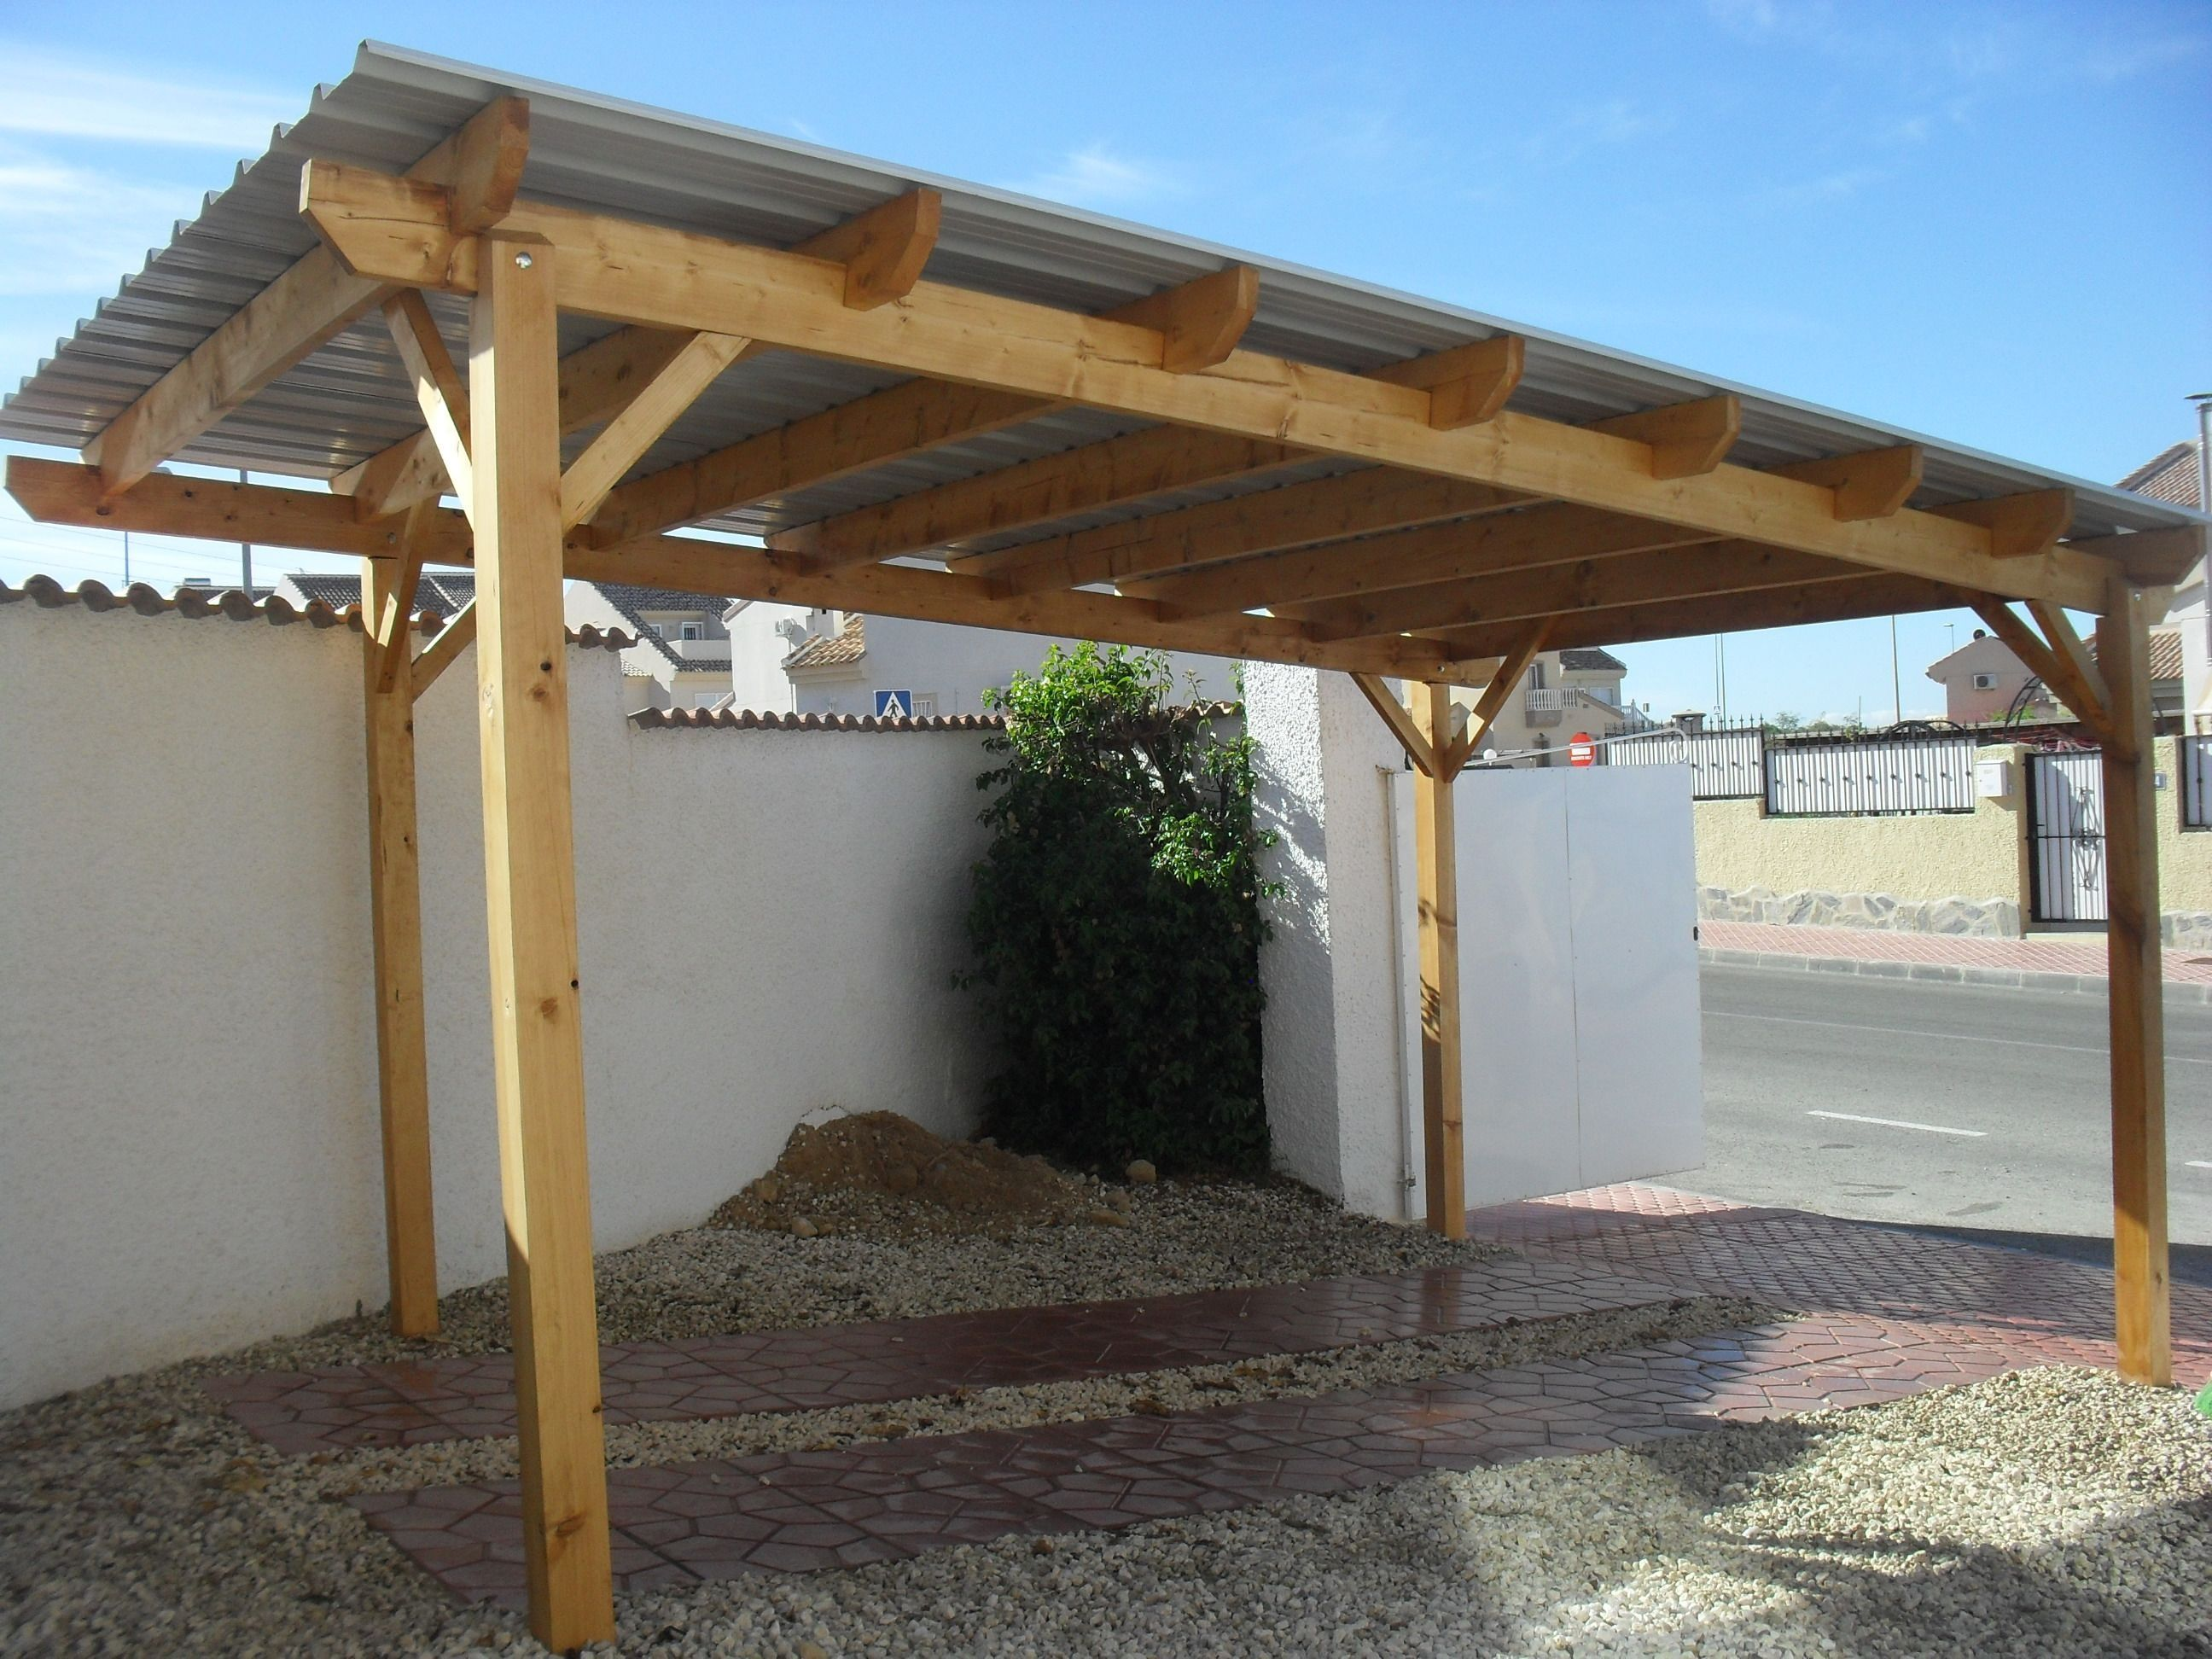 Adorable Home Depot Carport Kits On Carports Metal Roof Carport Kits Attached Carport Prices Wood Carport Kits Wooden Carports Diy Carport